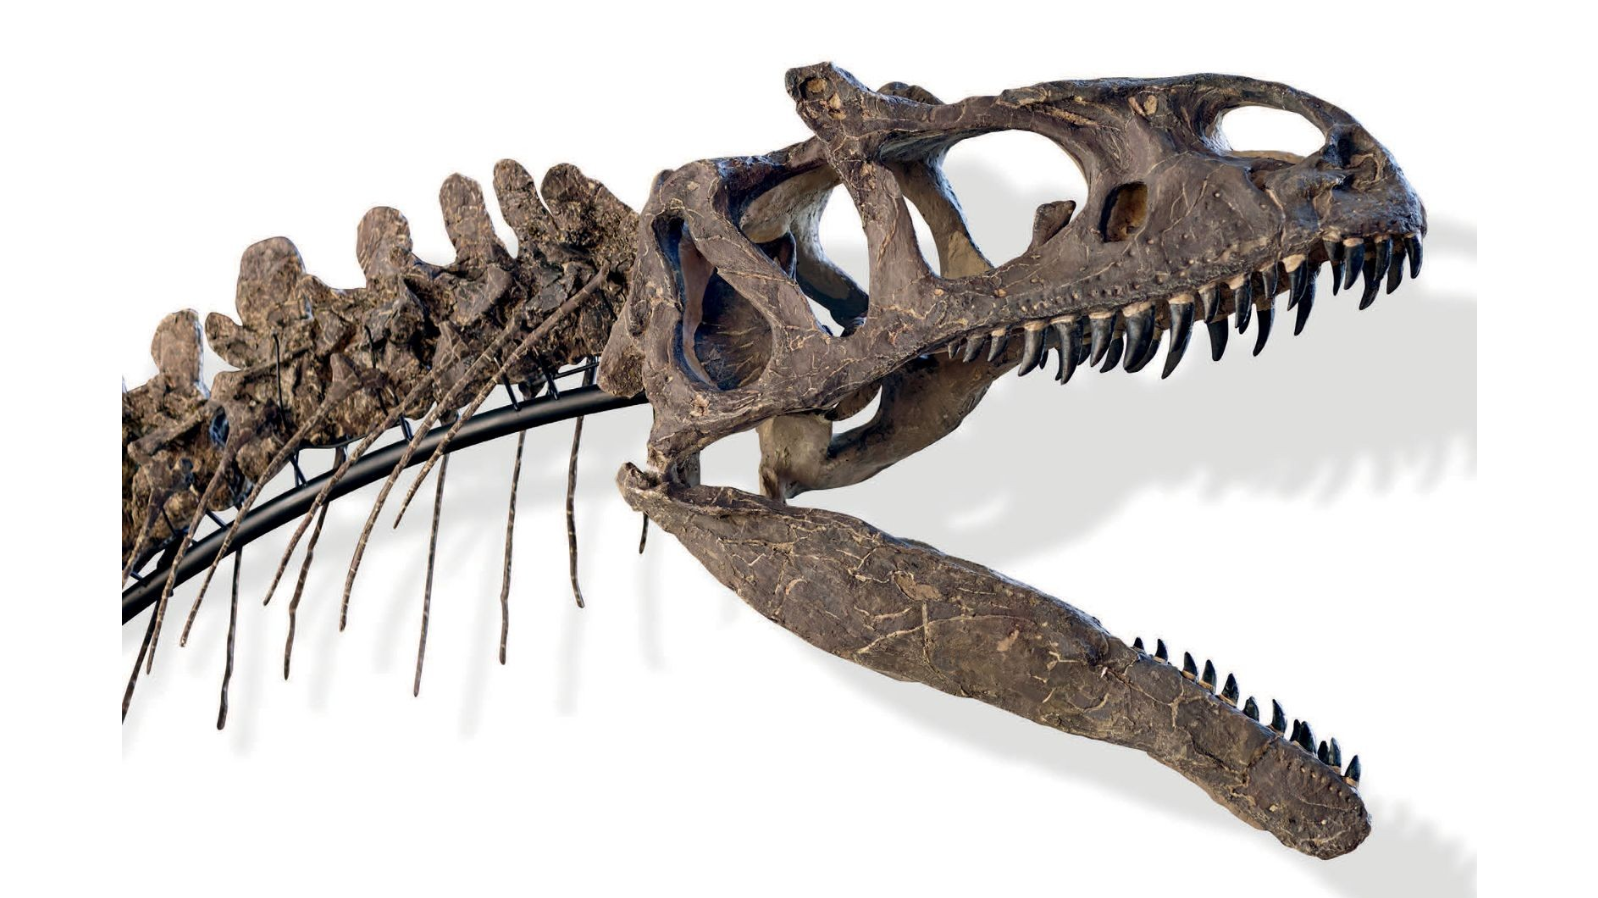 The fossilized skeleton of a carnivorous dinosaur excavated on private property in Wyoming sold for more than $2 million at an auction in Paris